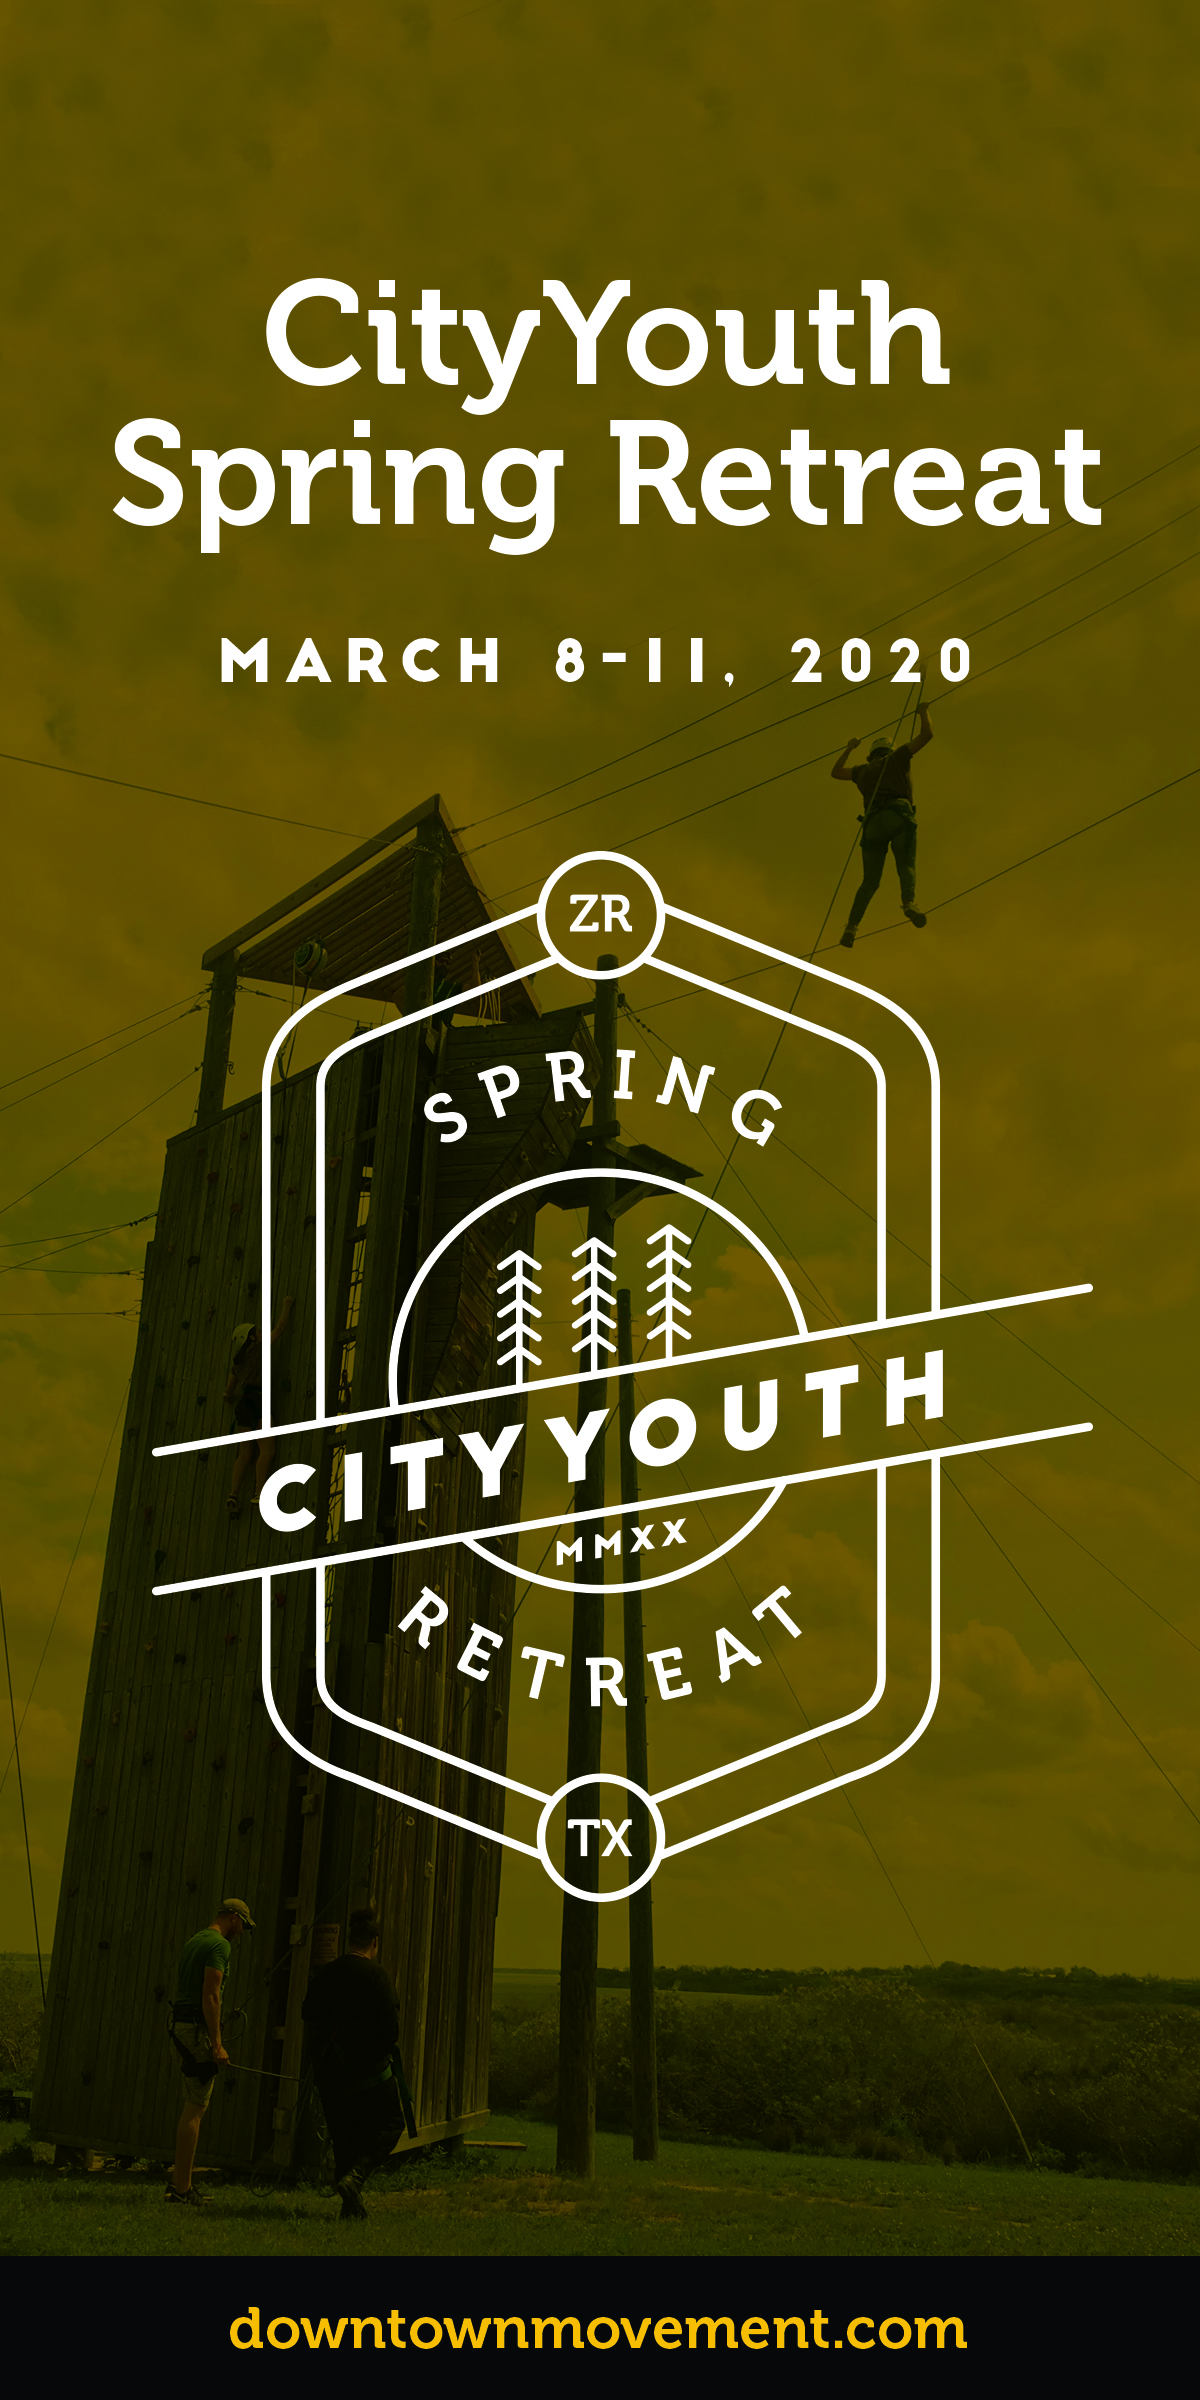 Sign up for City Youth Spring Retreat